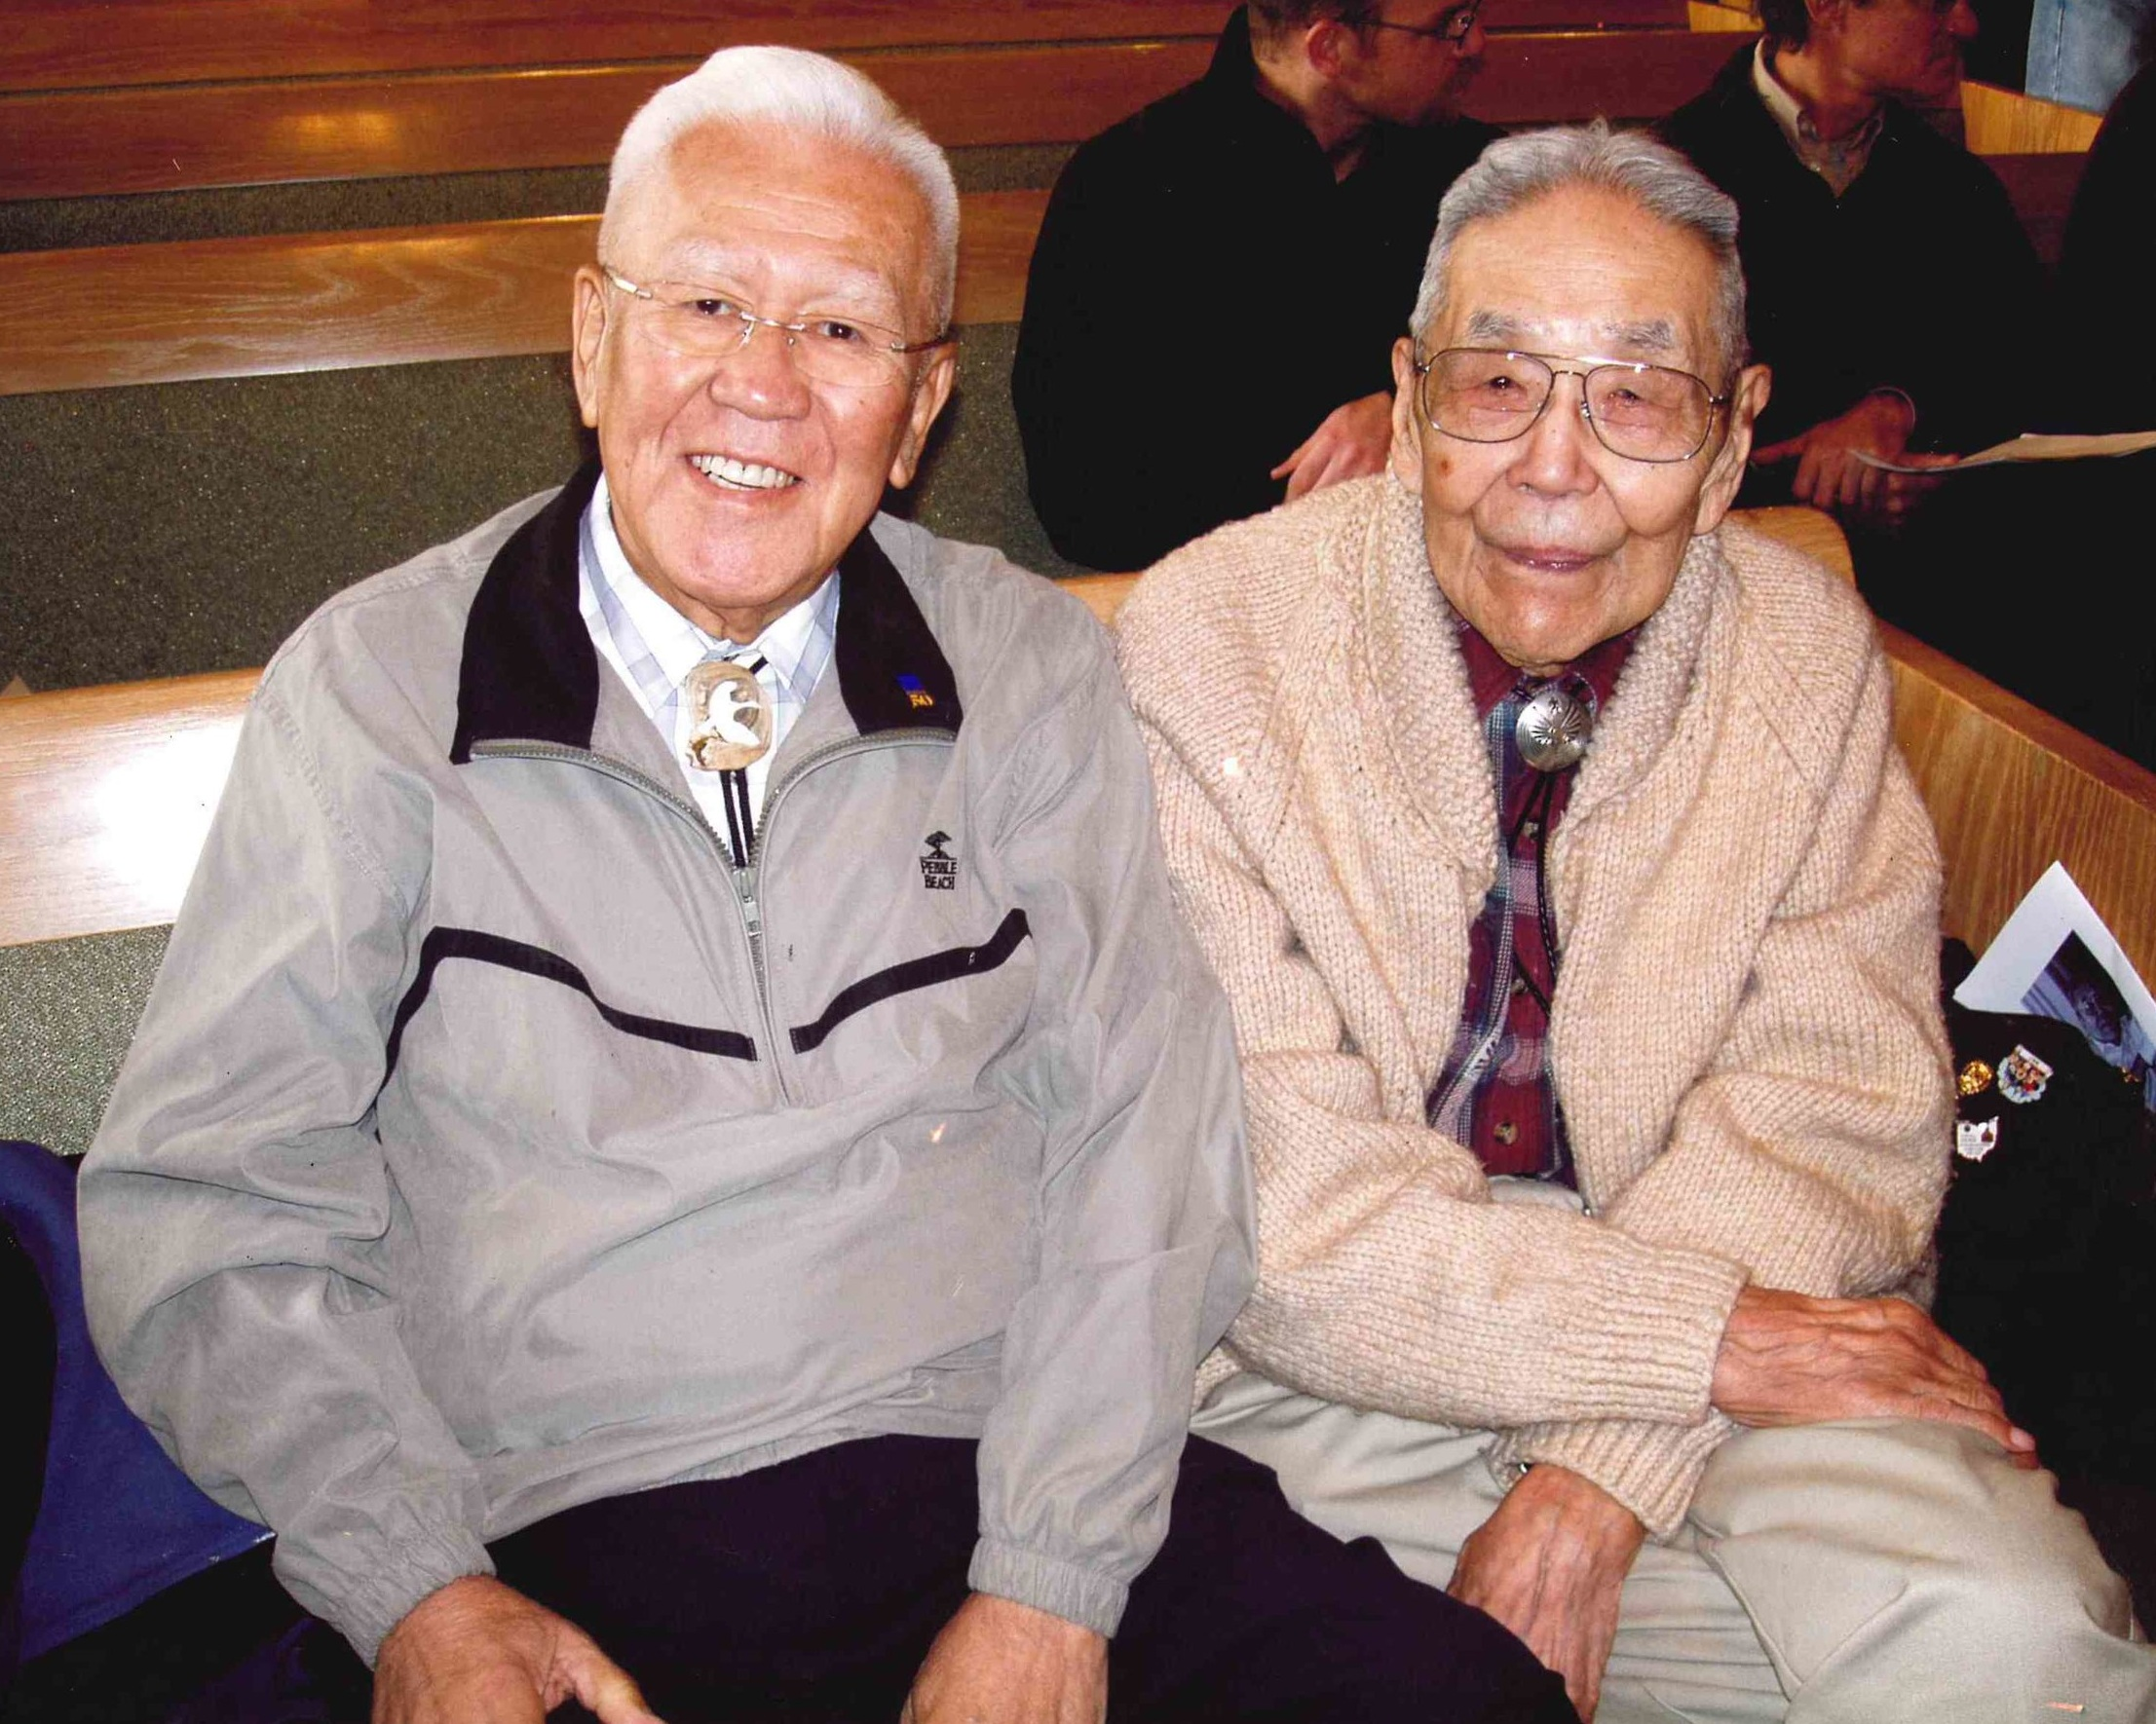 Rev. Dr. Henry Fawcett (left) and Rev.  Dr. Walter Soboleff , great Tlingit Pastor, Elder, Scholar and 2nd Native Alaskan ordained as teaching elder in the PCUSA, for whom the Sealaska Heritage Institute's Walter Soboleff Building in downtown Juneau is named.